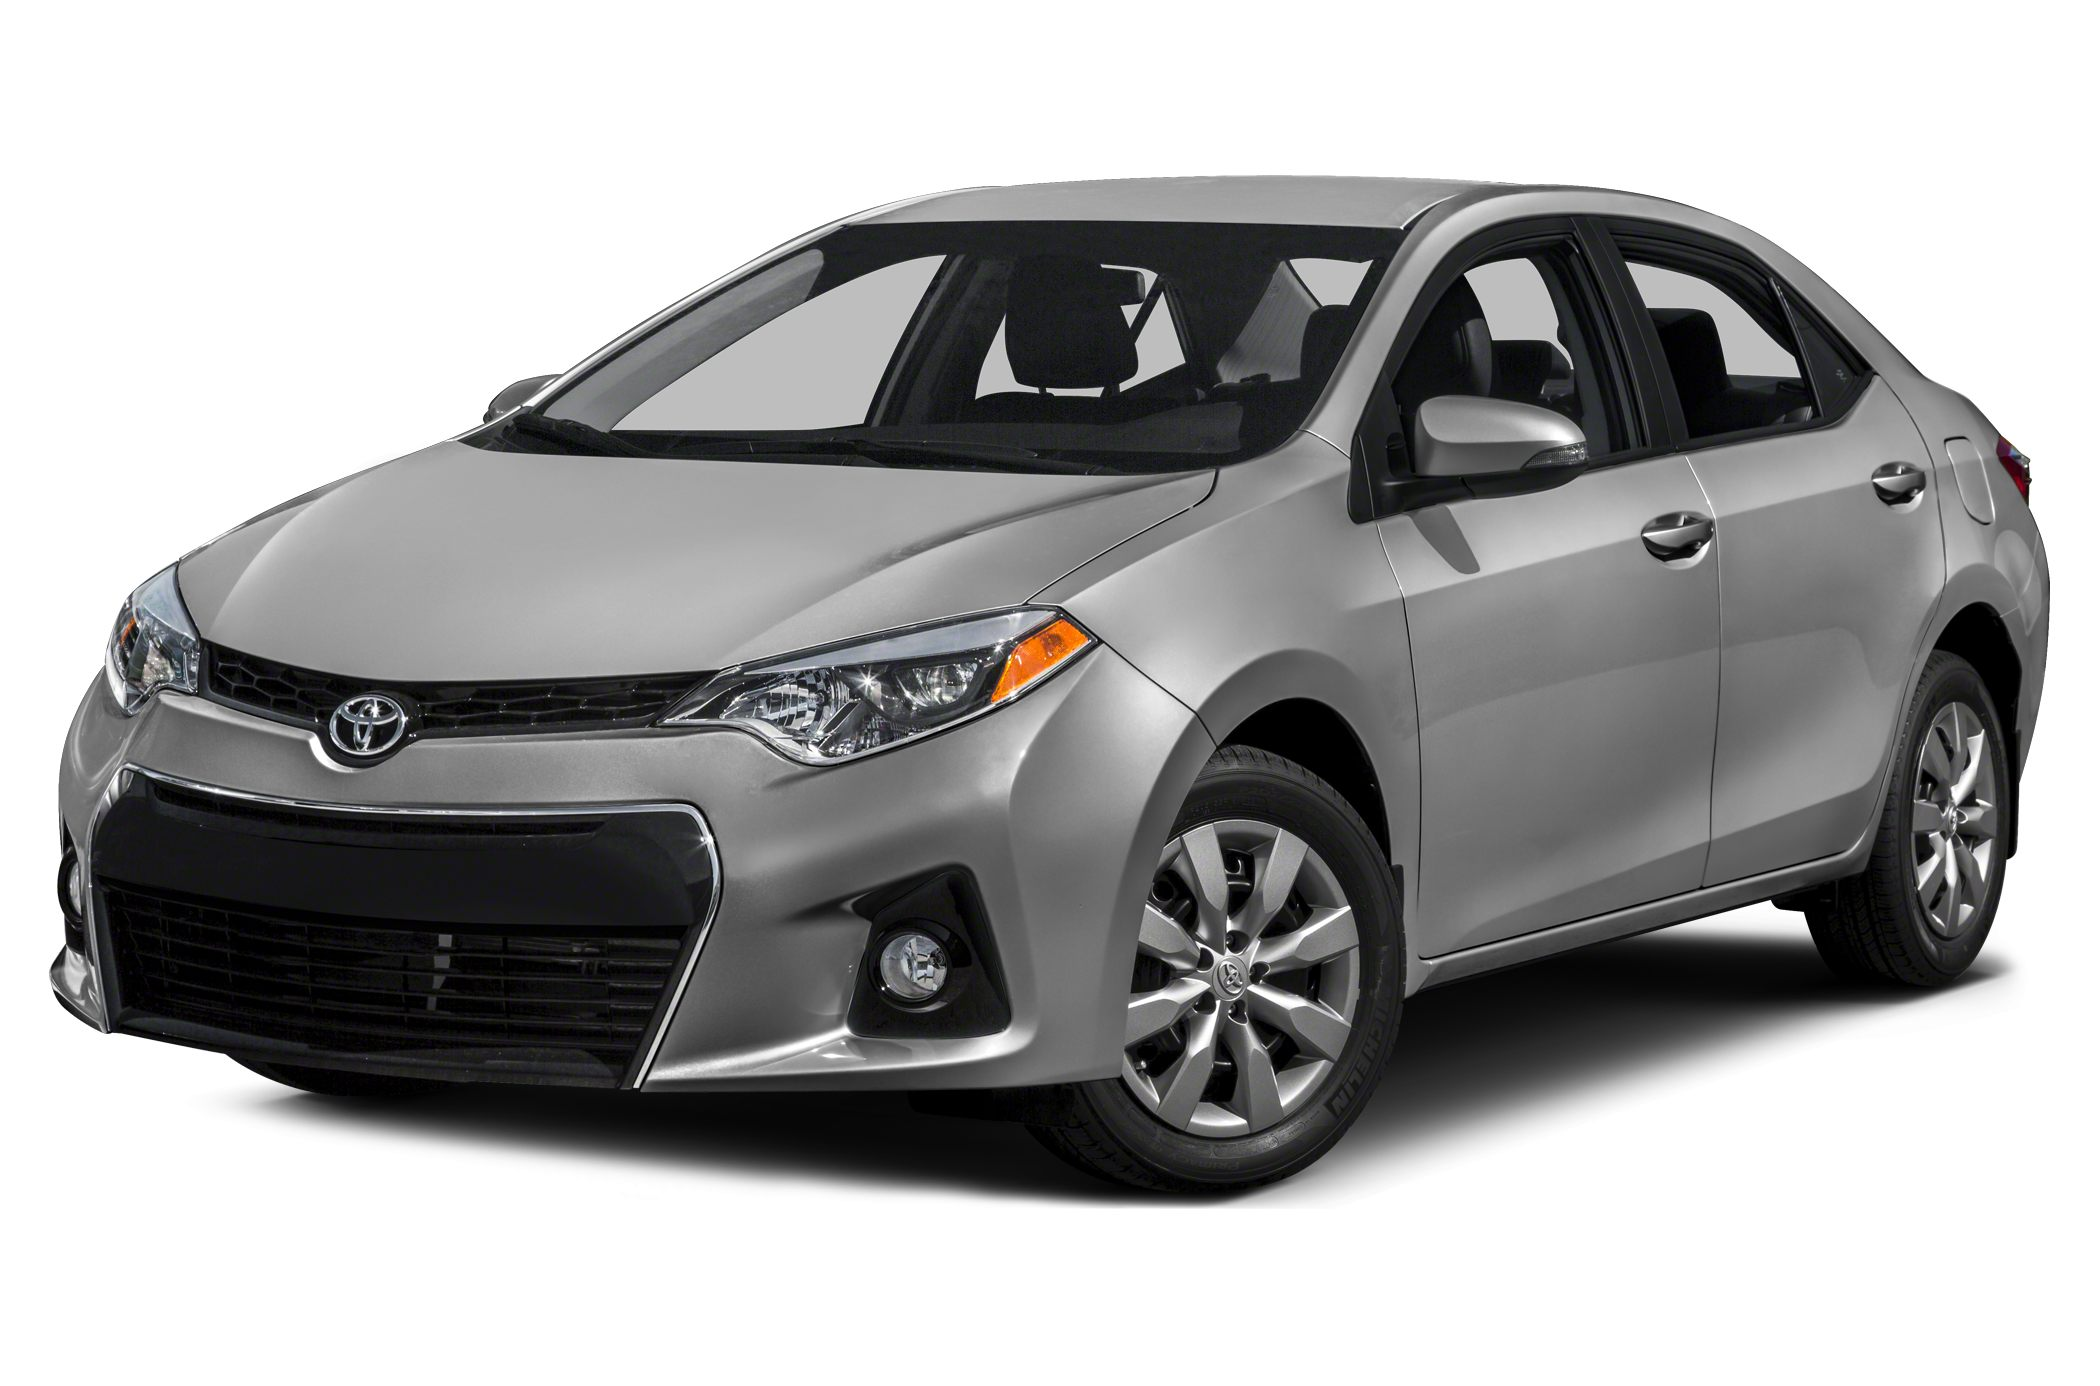 2014 Toyota Corolla S Plus Sedan for sale in Buckhannon for $18,999 with 19,513 miles